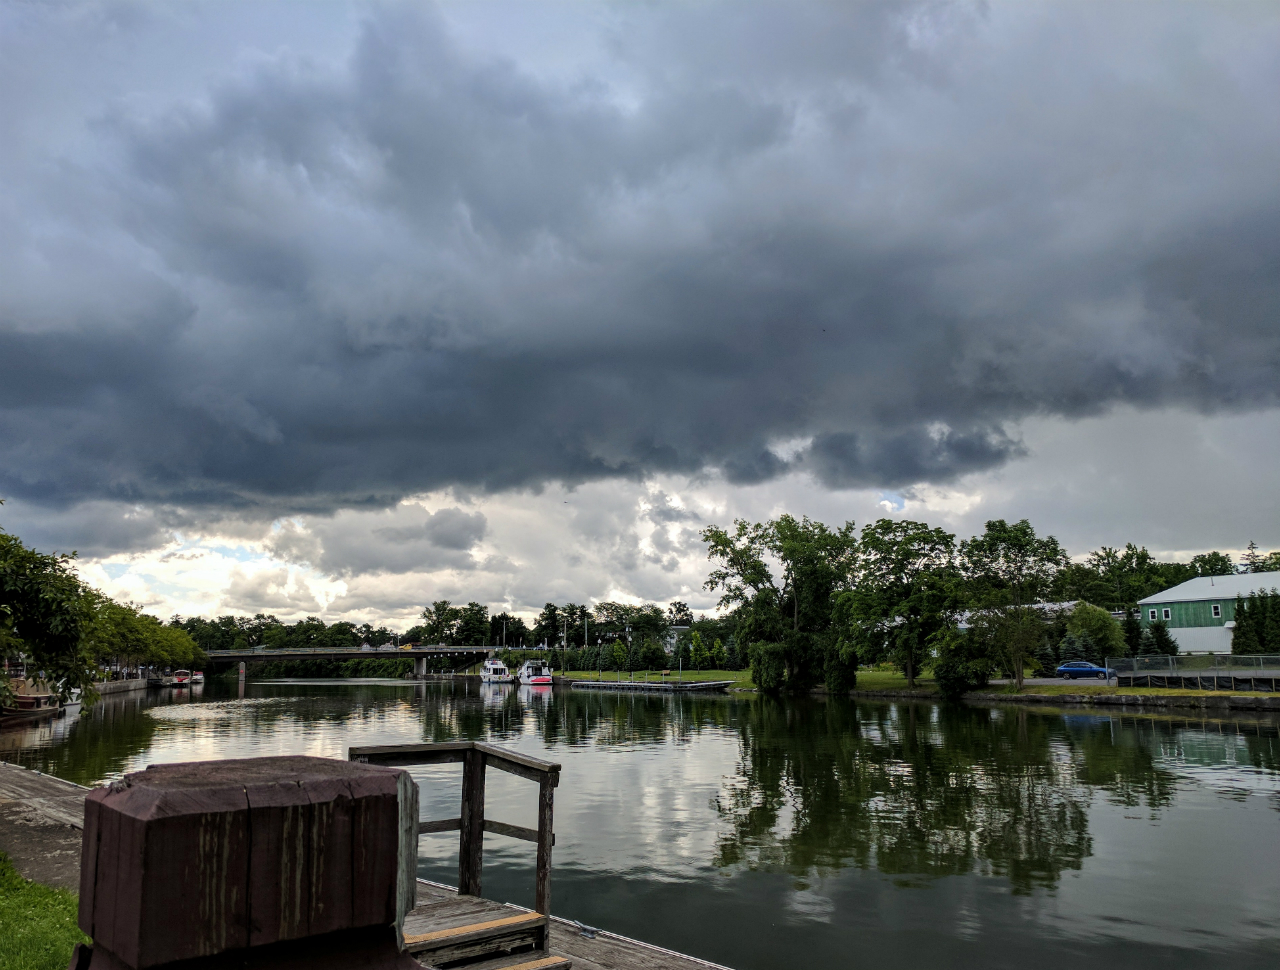 Storms over the canal harbor (photo)